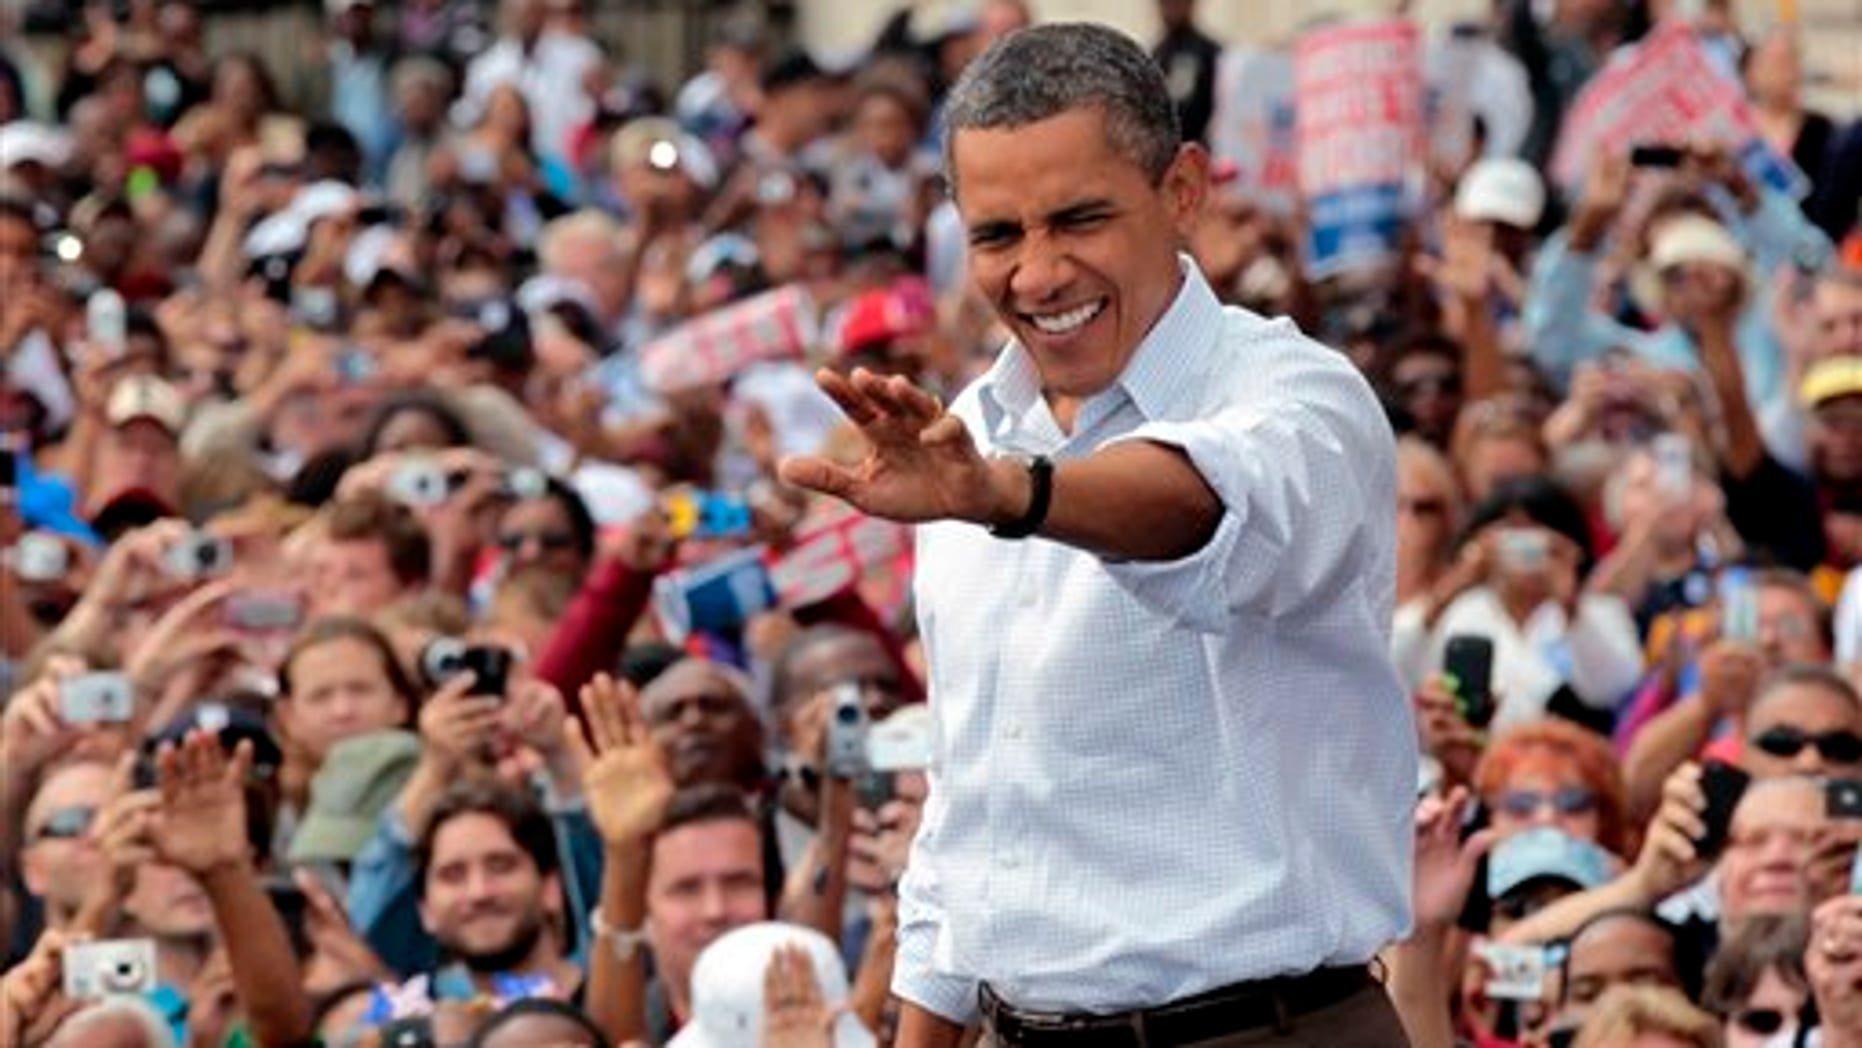 Sept. 5: President Barack Obama waves to supporters during a Labor Day speech at Detroit's Renaissance Center, headquarters of General Motors, in Detroit, Mich.